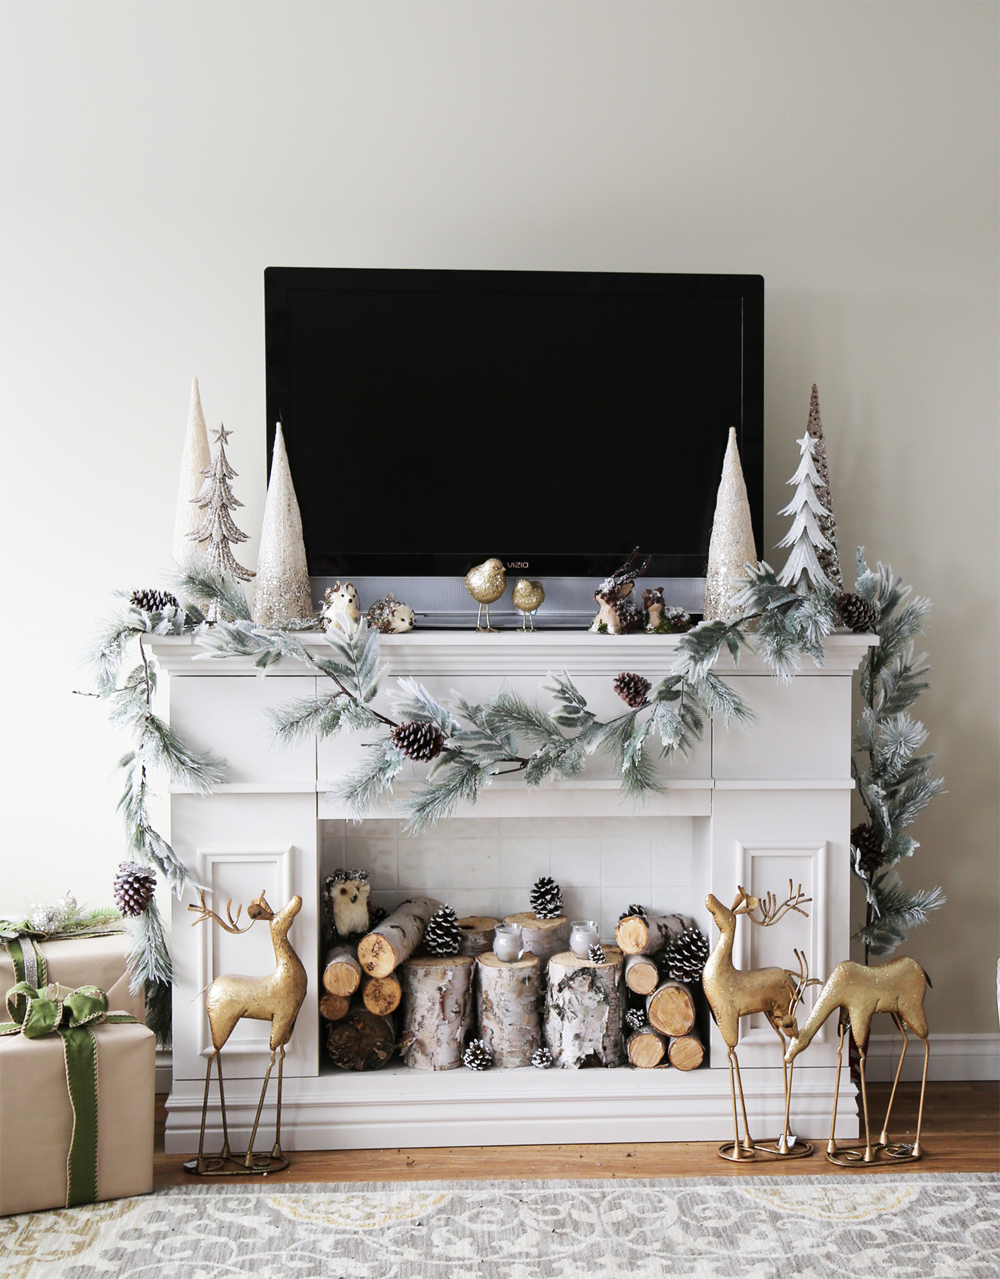 https://www.homedit.com/decorate-a-faux-fireplace/